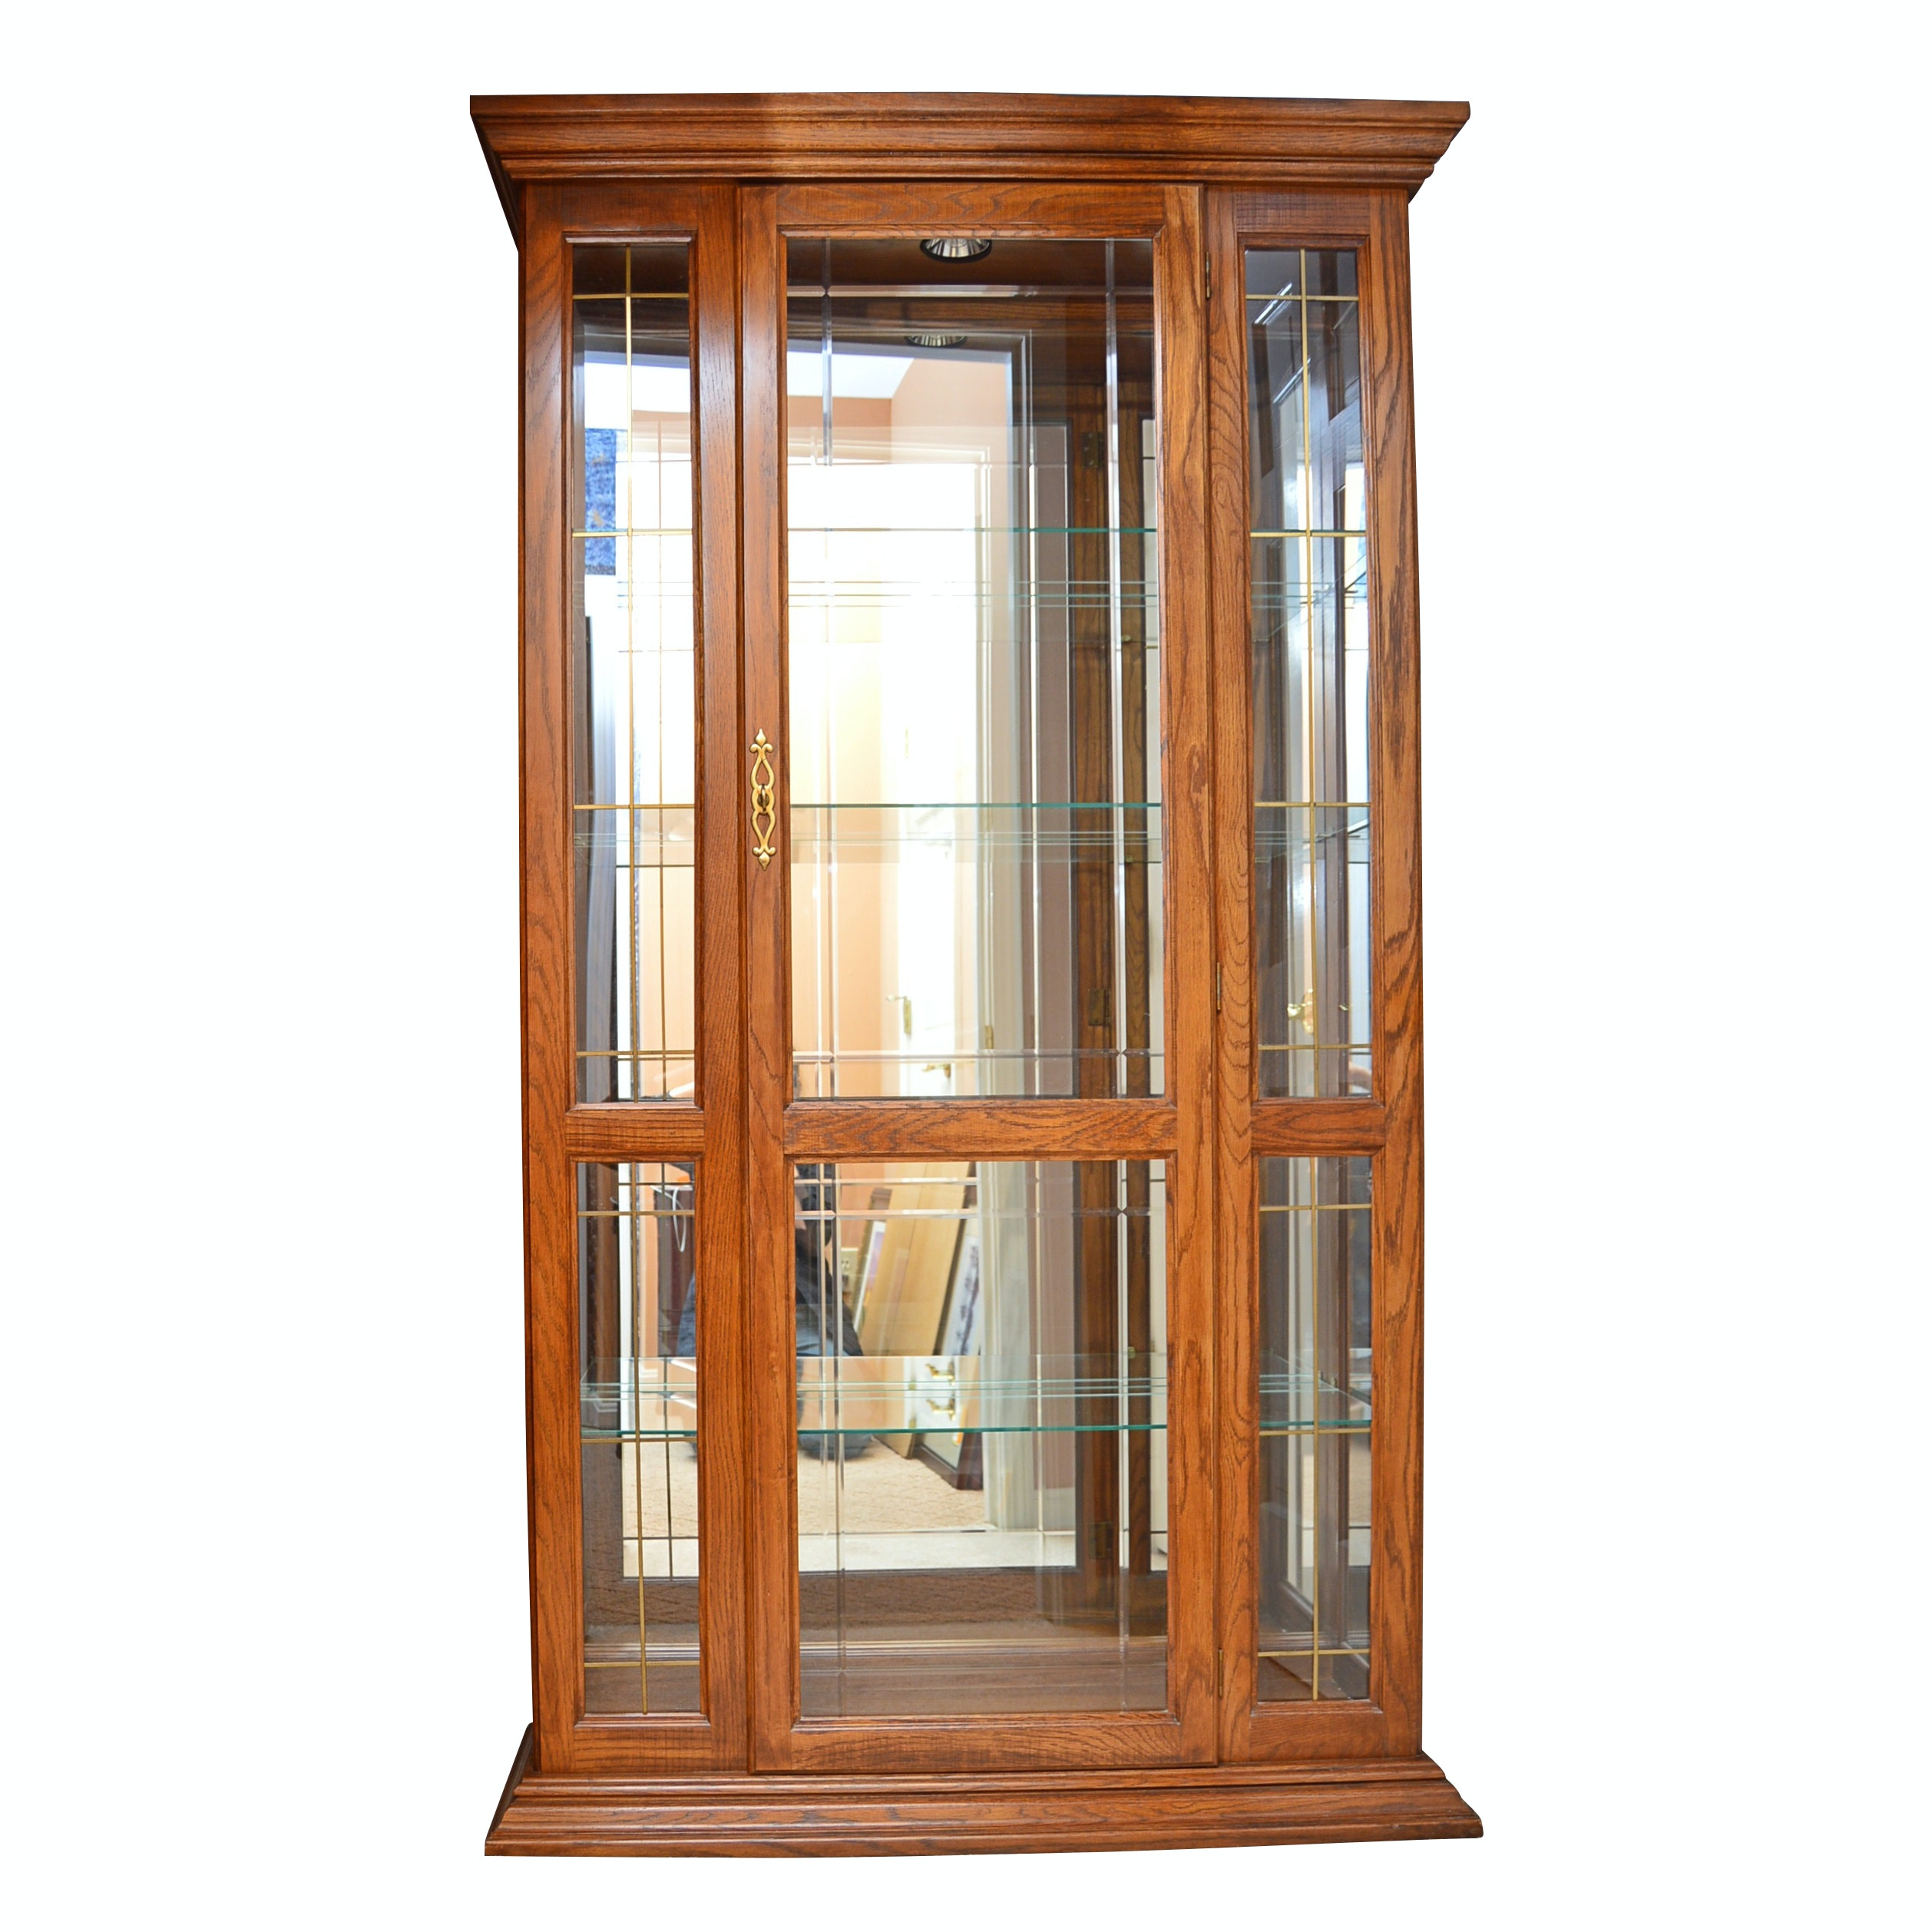 Lighted Oak Display Cabinet with Mirrored Back